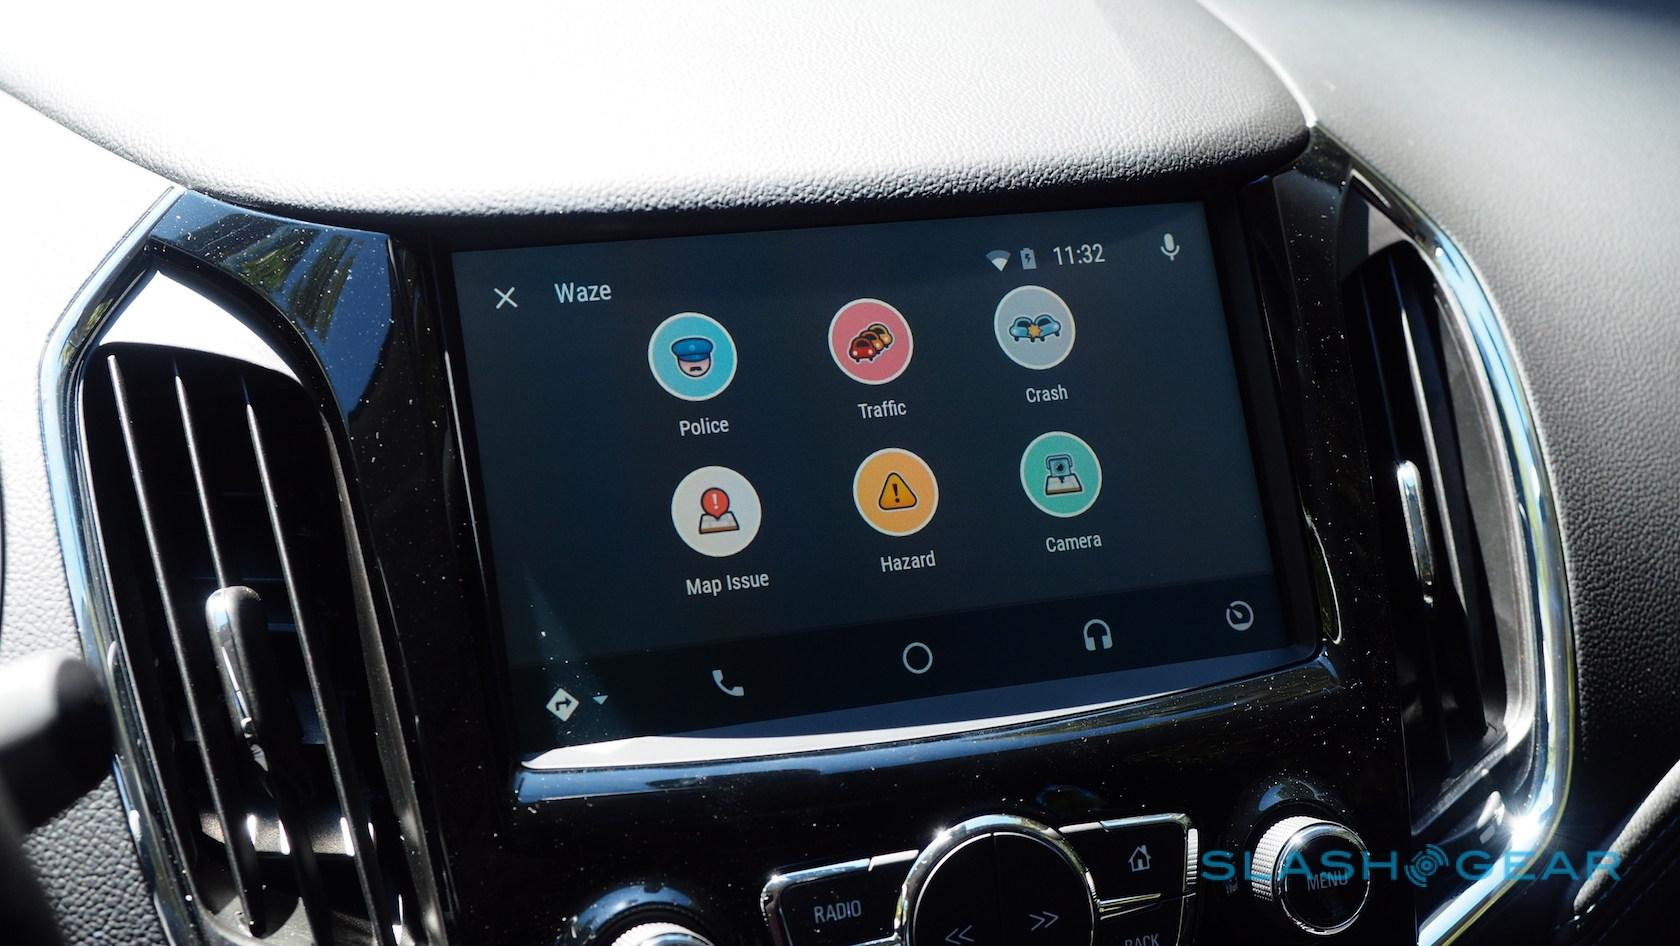 Waze Android Auto hands-on: The reason for Android-in-the